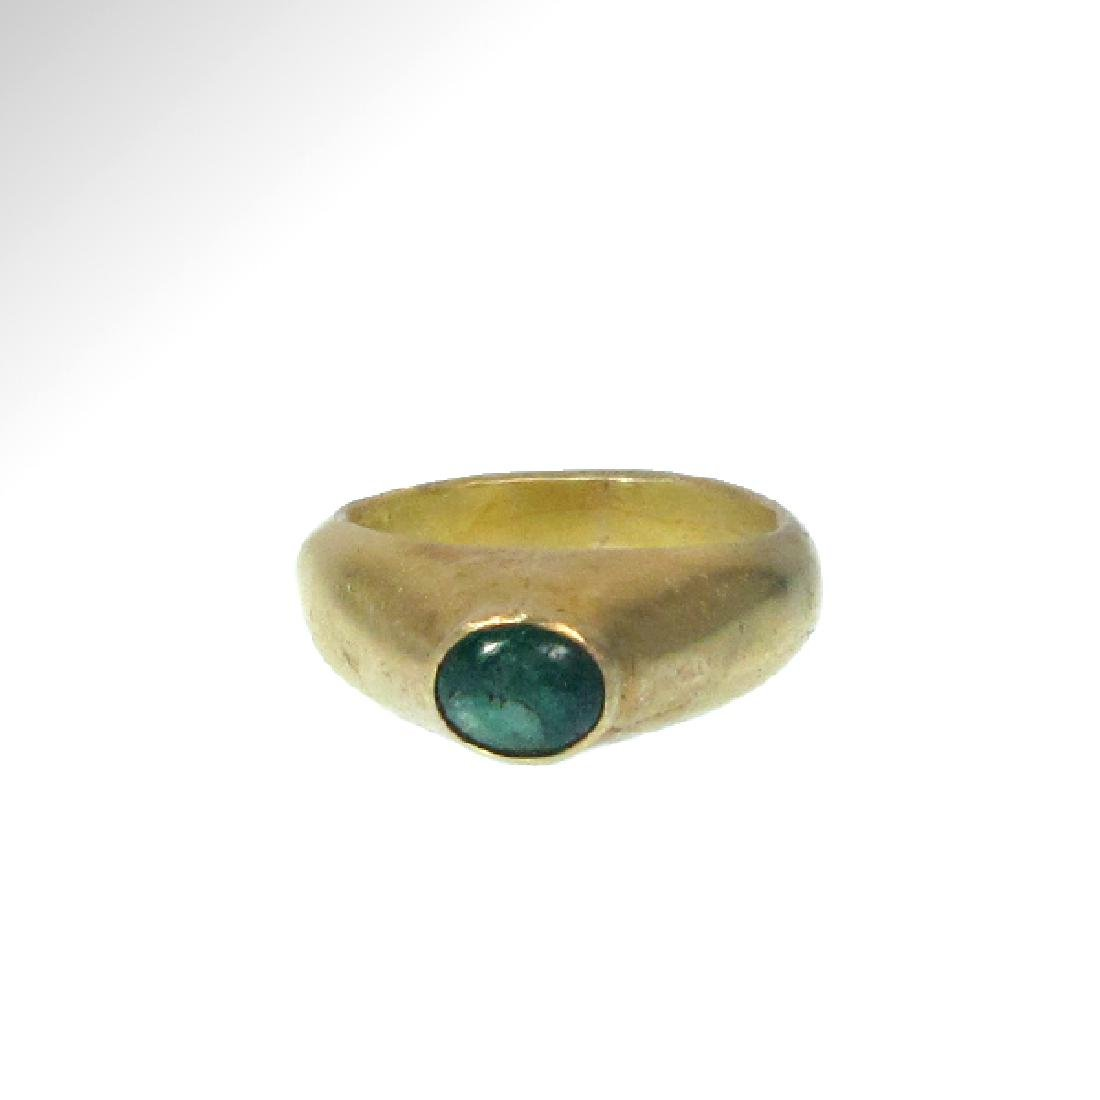 Medieval Gold and Emerald Stirrup Ring